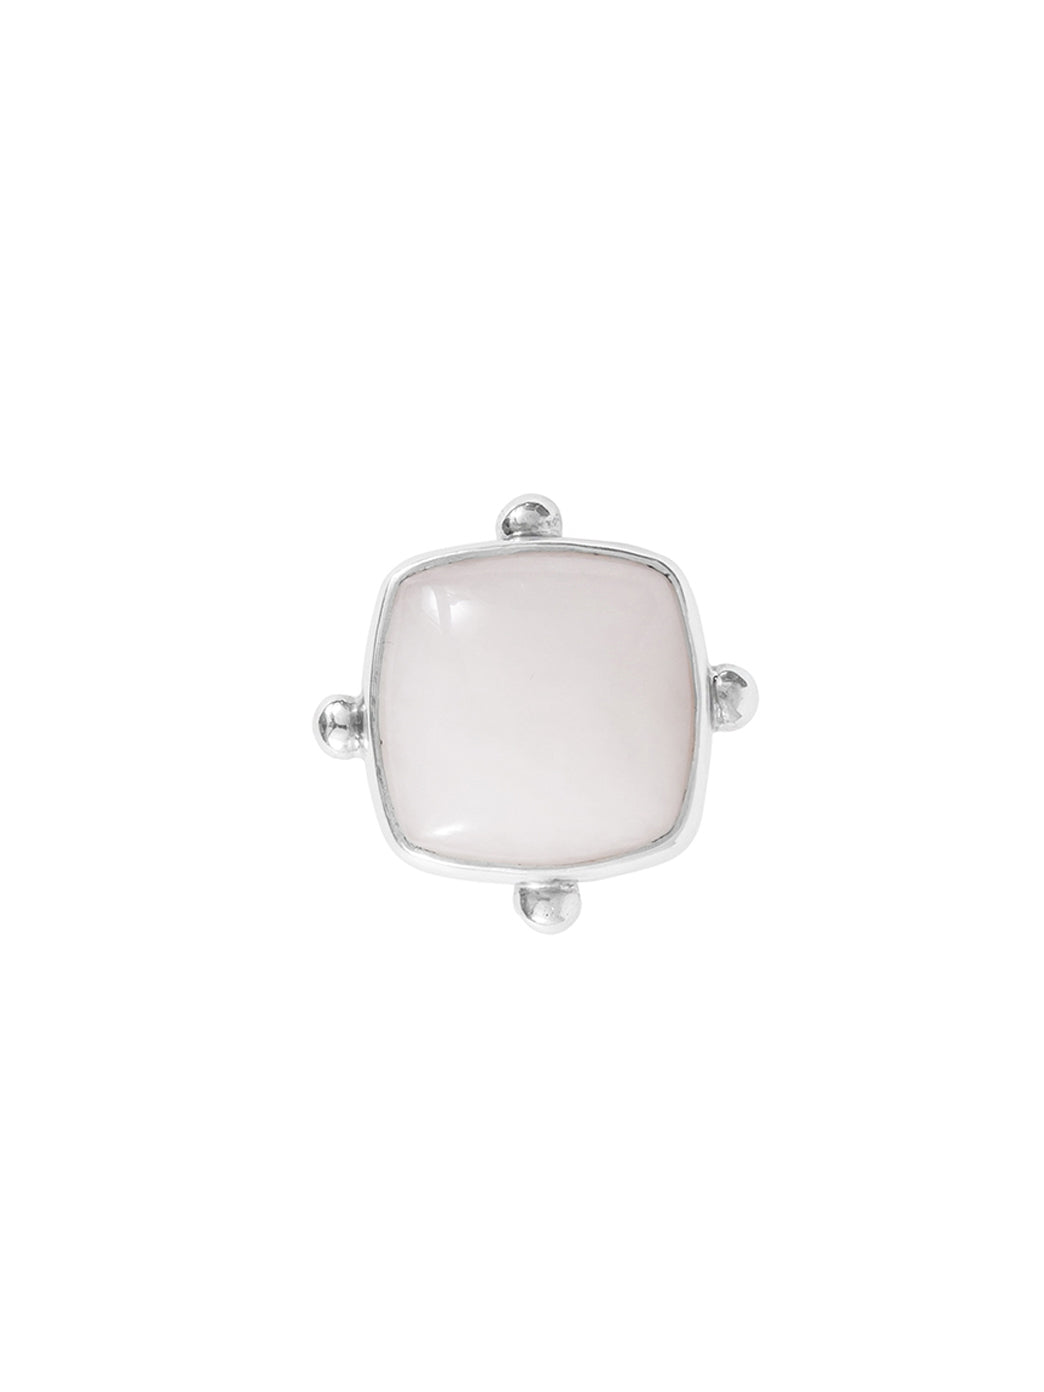 Fiorina Jewellery Cushion Cut Fishband Ring White Howlite